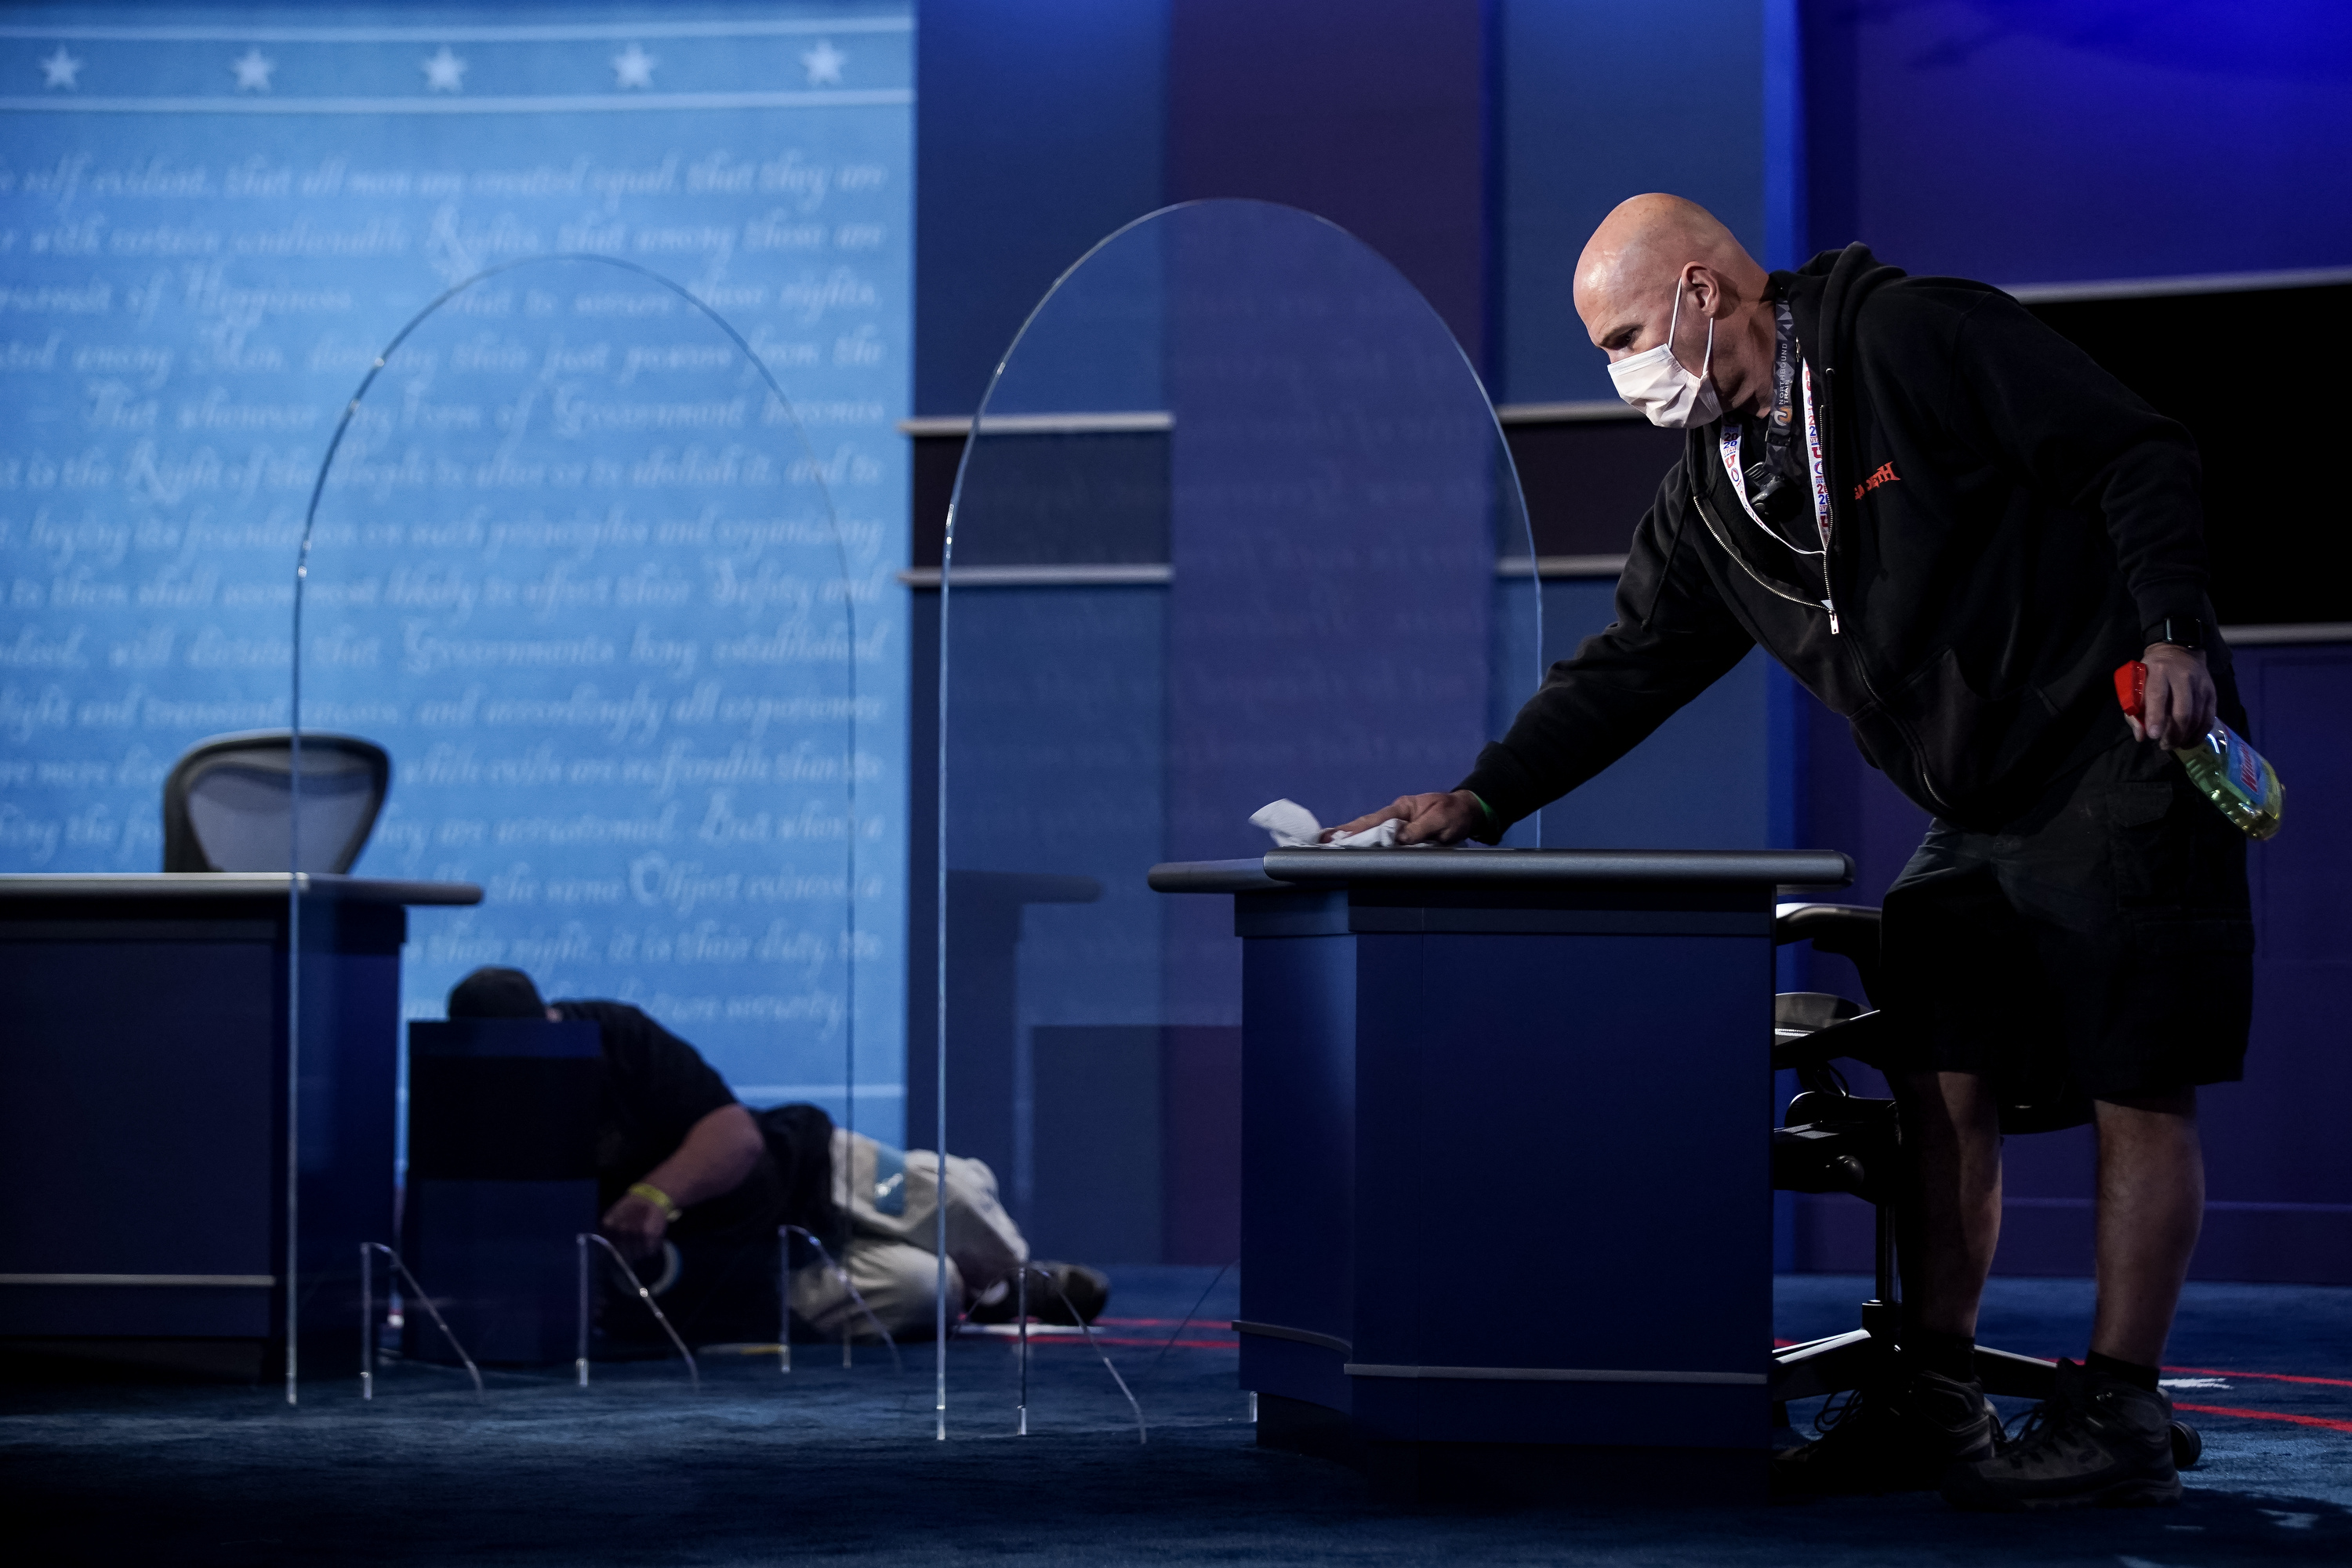 Crew members put the final touches on the stage, which now includes plexiglass partitions, at Kingsbury Hall at the University of Utah in Salt Lake City on Tuesday, Oct. 6, 2020, in preparation for Wednesday's vice presidential debate.